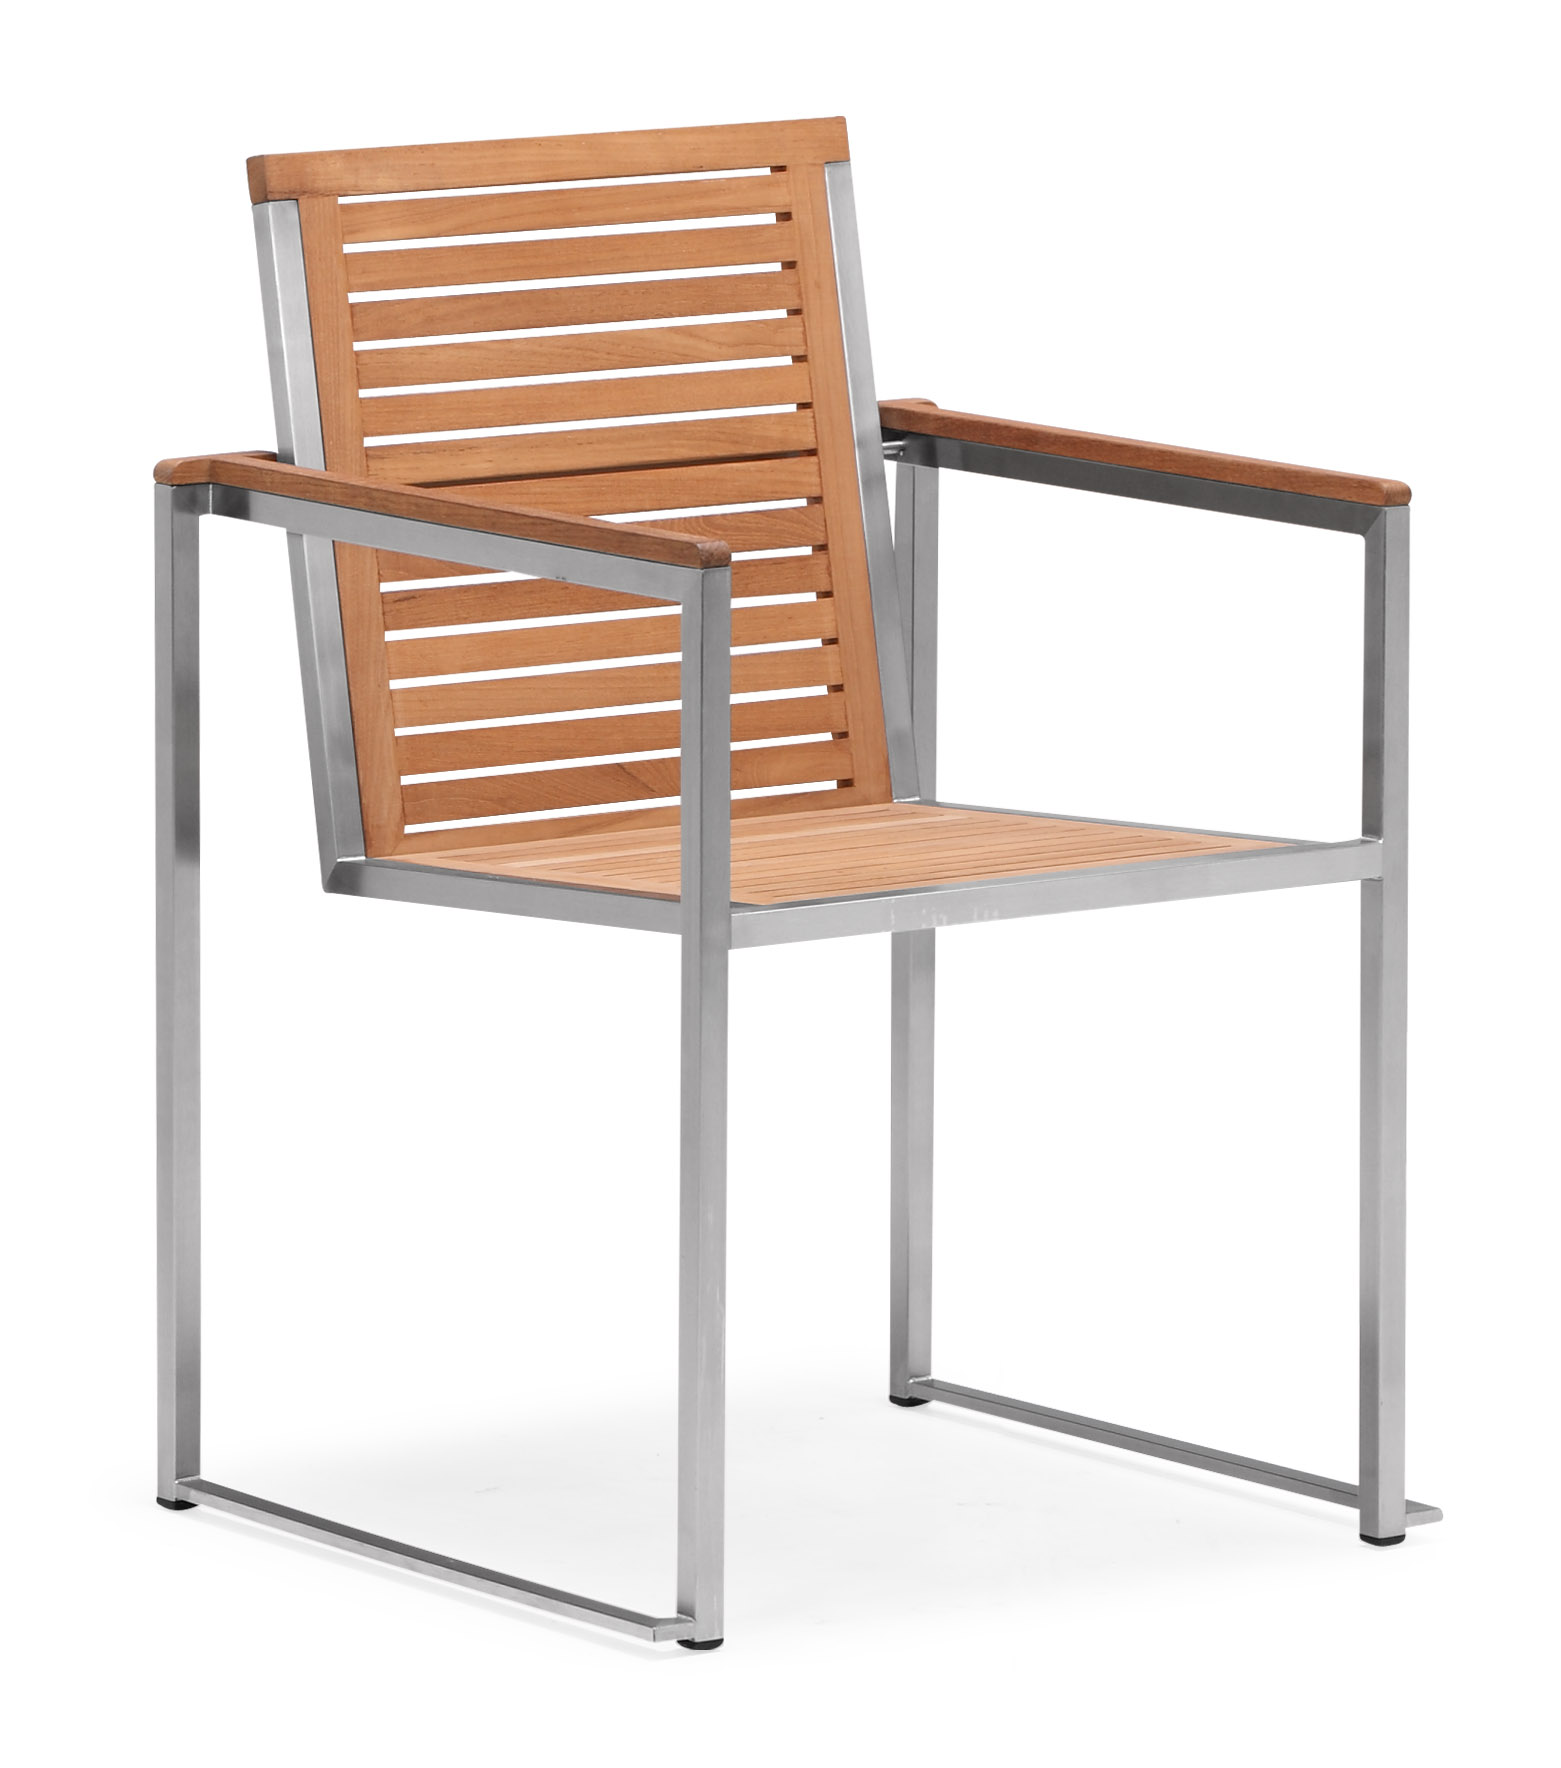 Teak stackable outdoor dining chair (Y006MF)